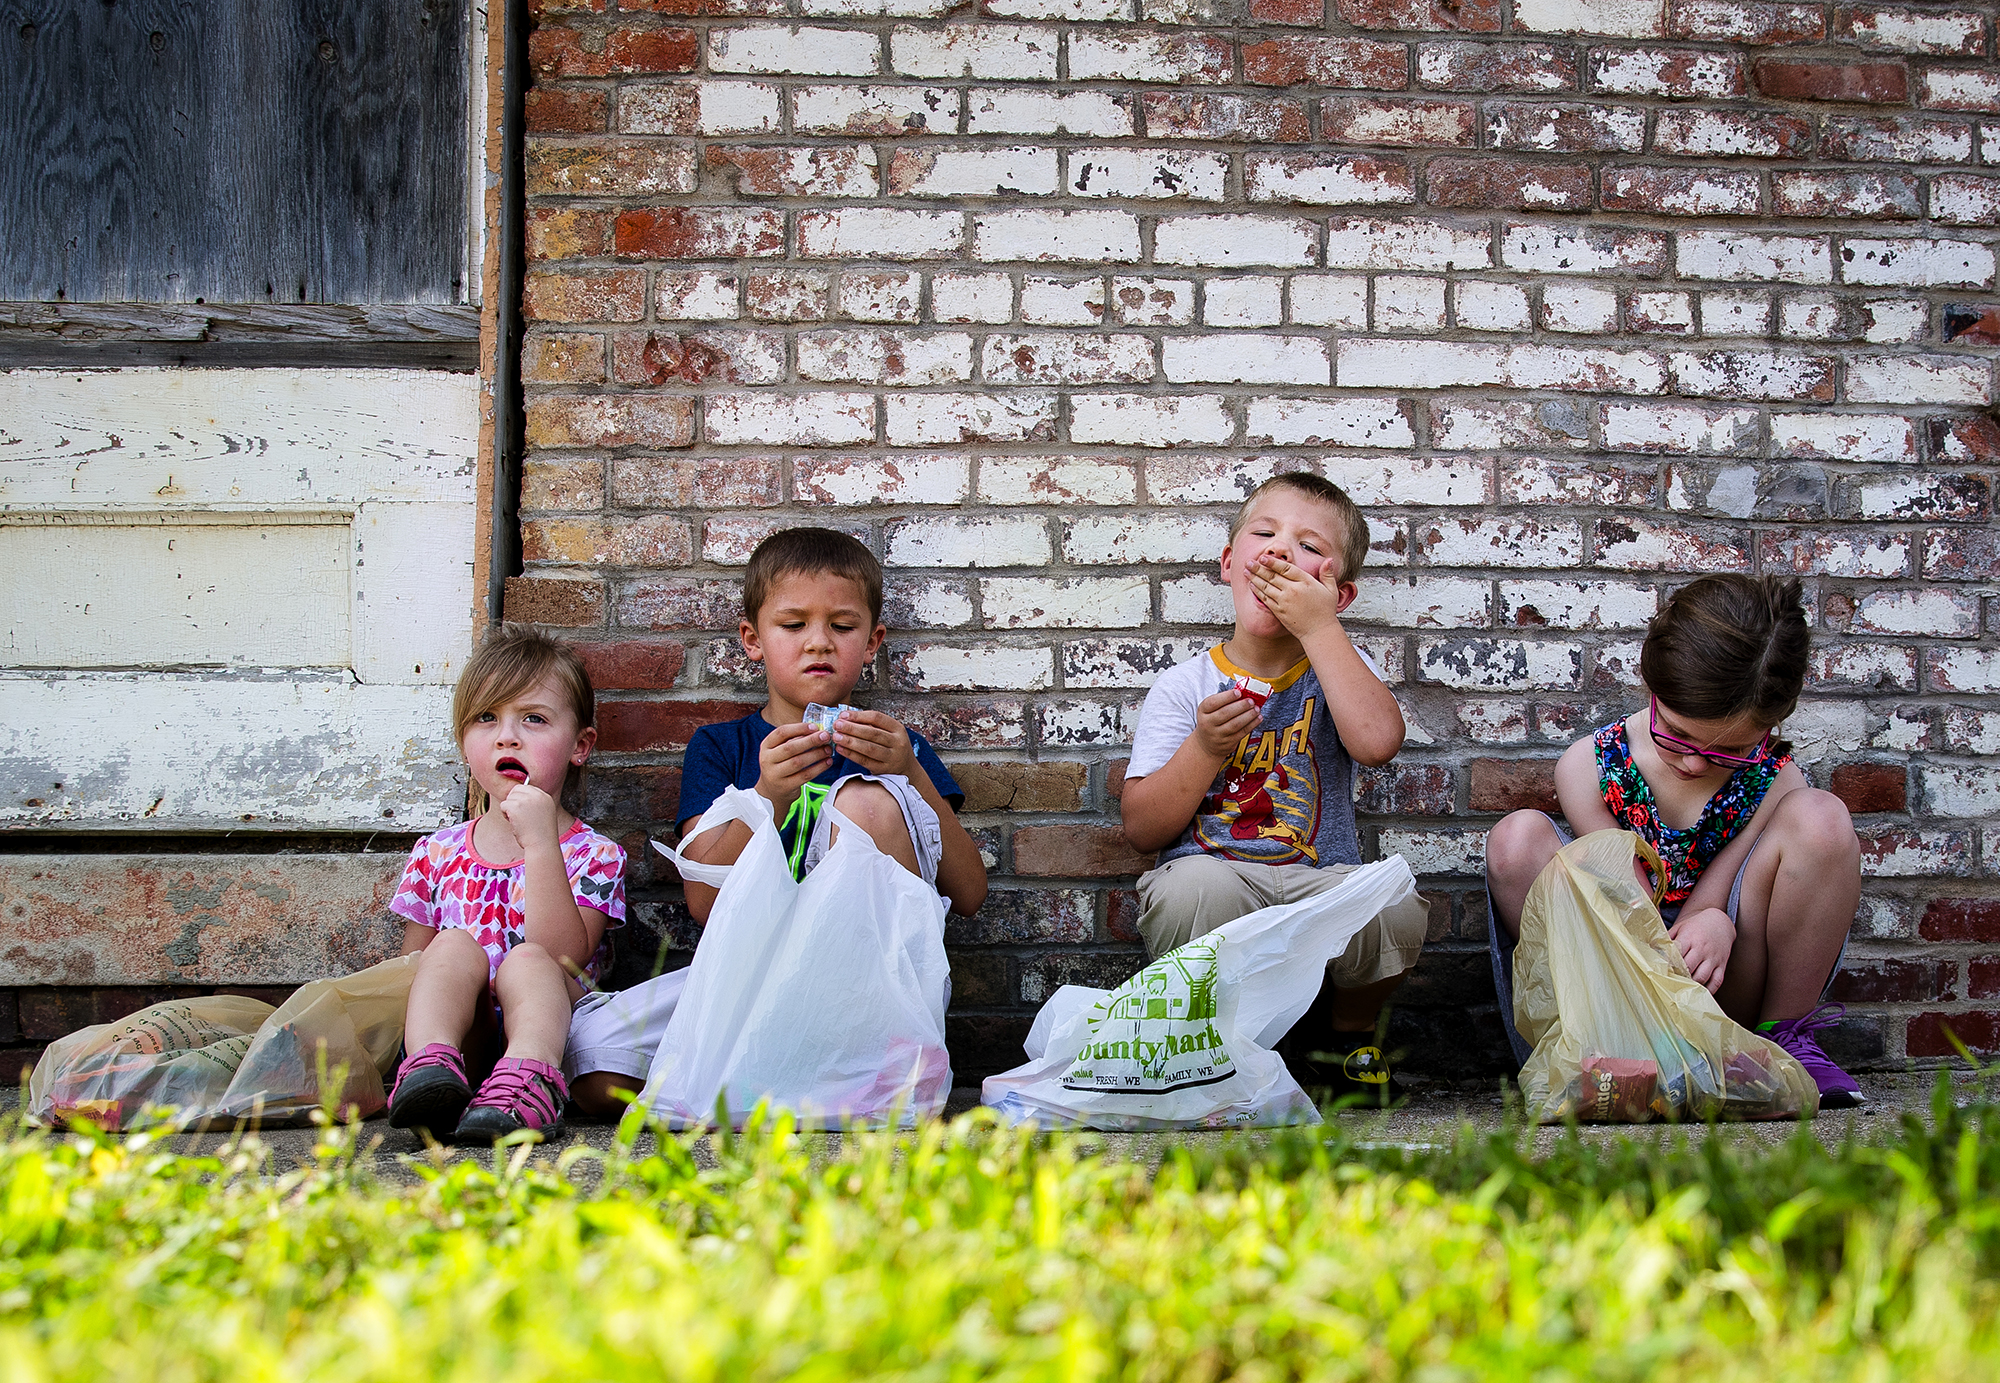 Genevieve Ramos, left, brothers Kyann and Asher Johnson, and Madison Swarts take a break from the parade to sample some of their candy in the shade during the 50th Annual Greenview Labor Day Celebration Monday, Sept. 3, 2018. [Ted Schurter/The State Journal-Register]